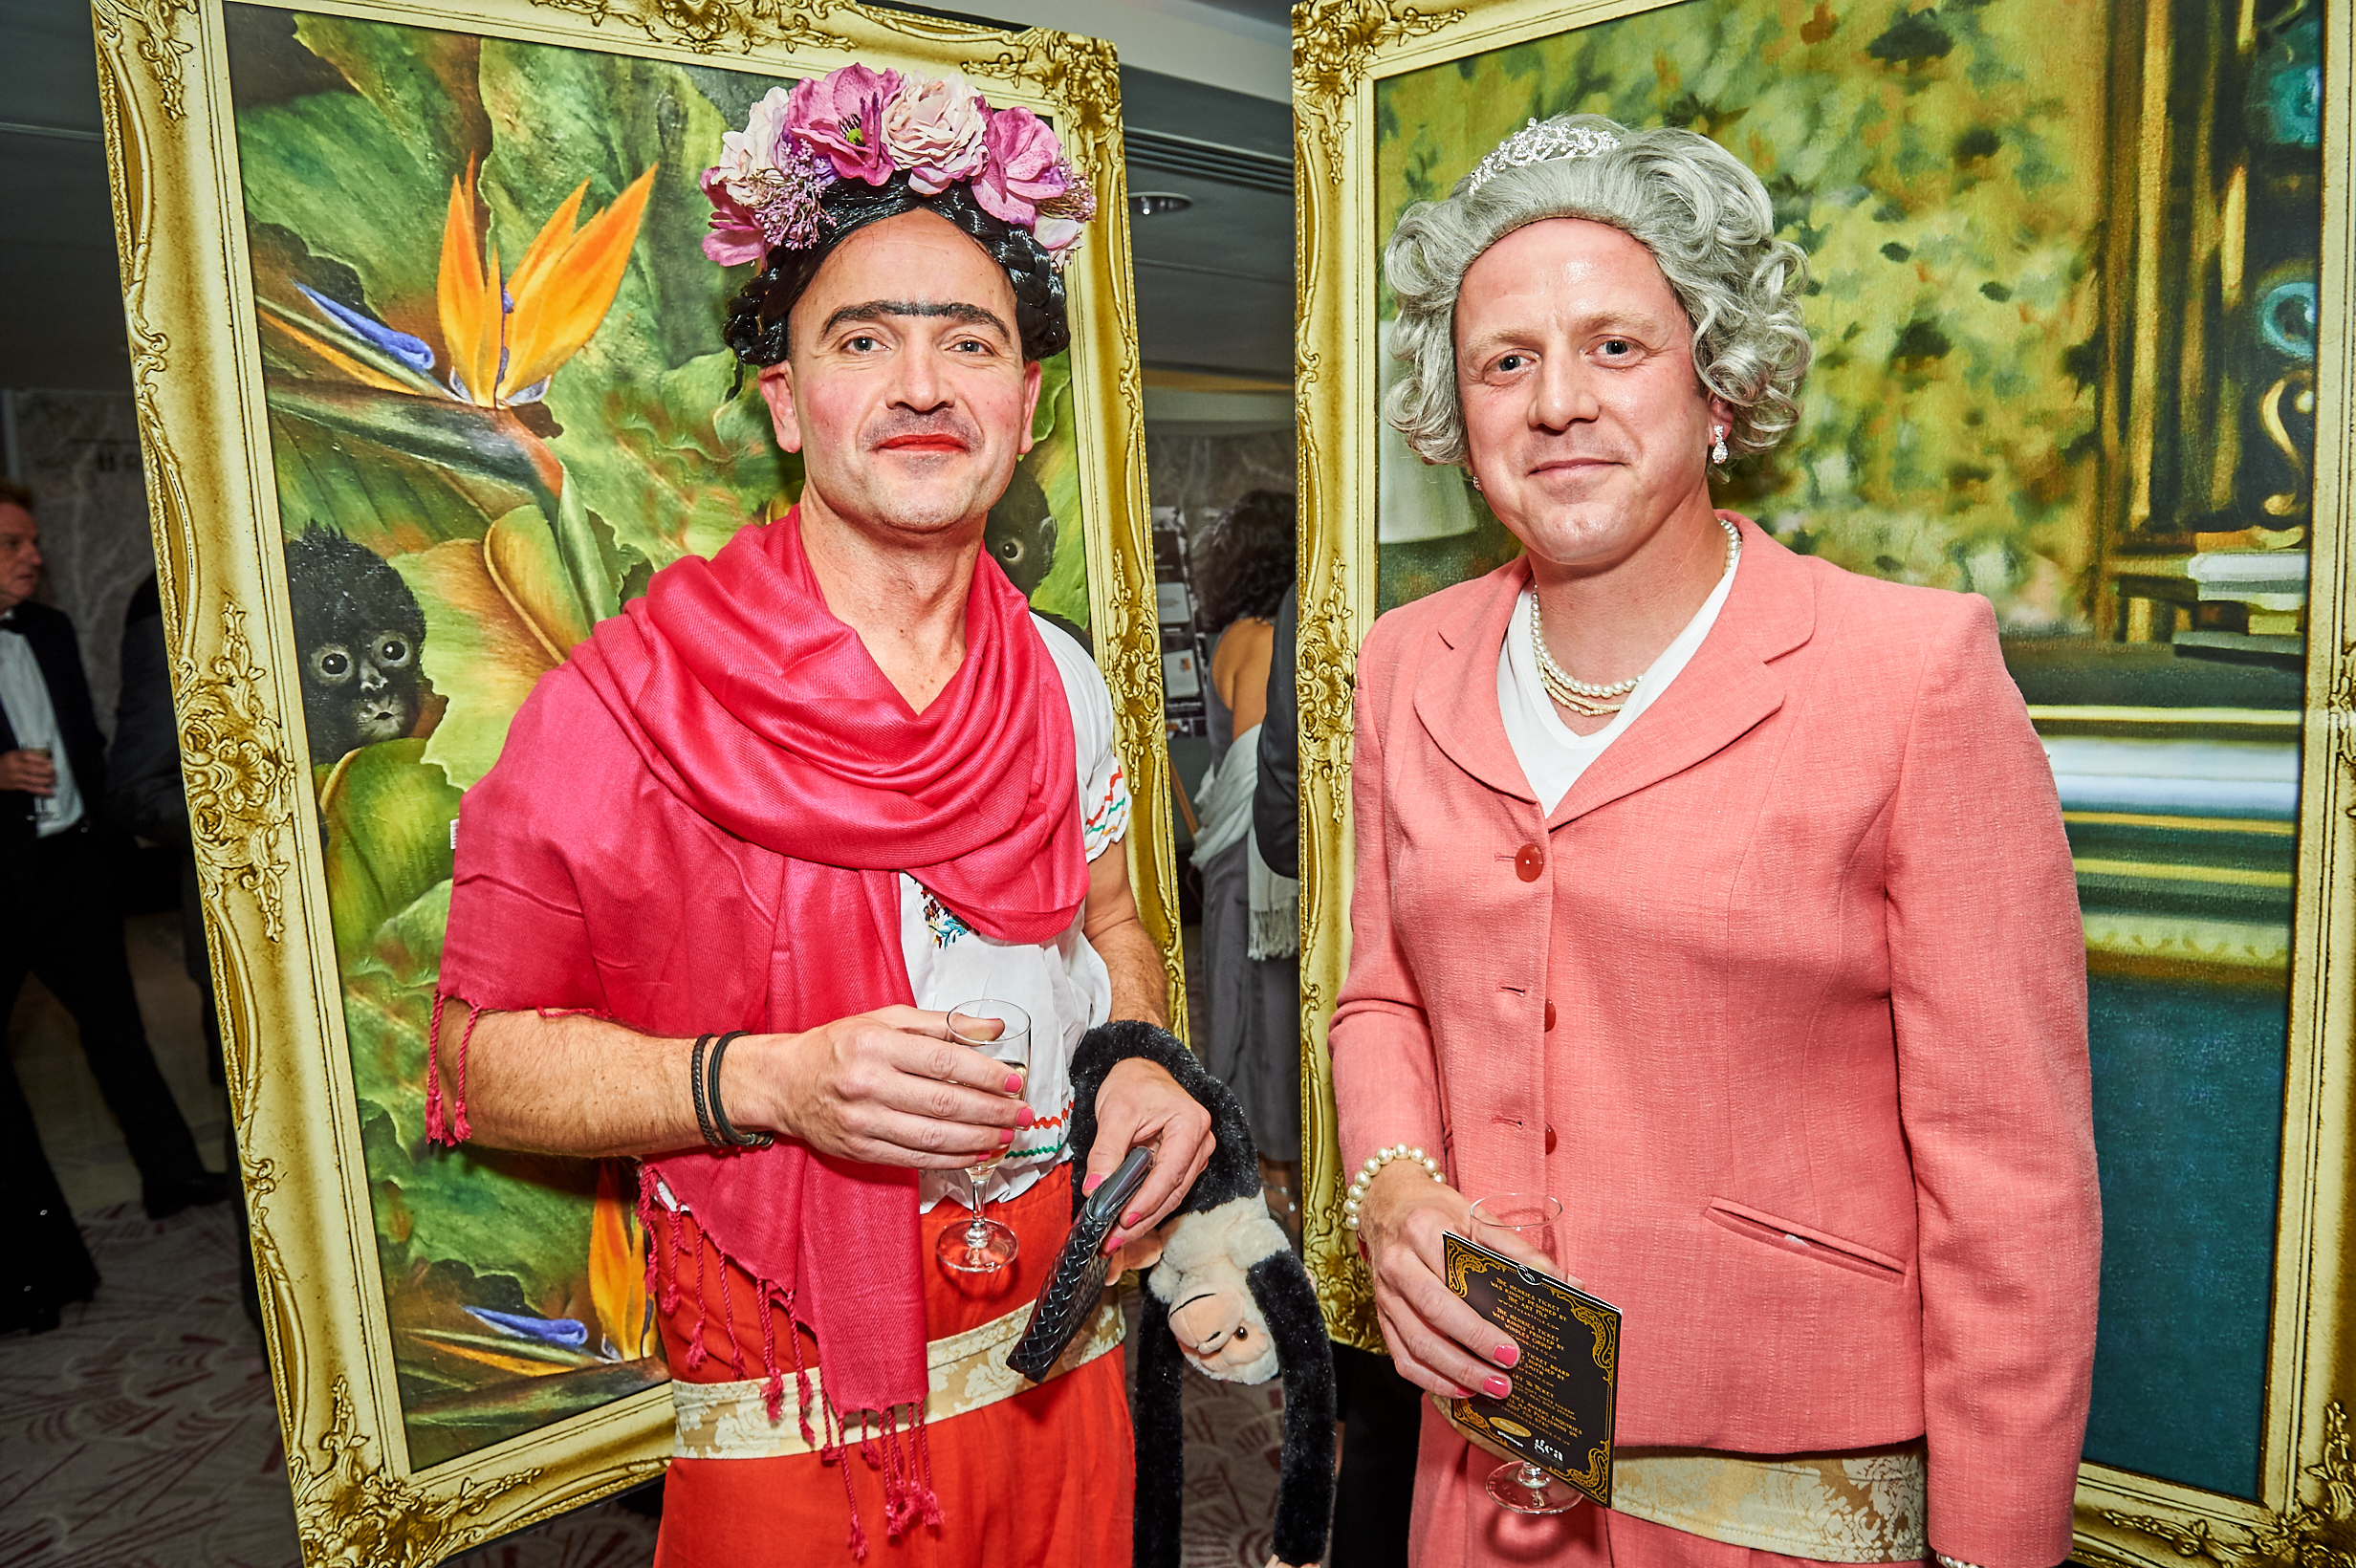 Above: Legends in their own lifetime, the Brainbox Candy boys, as ever, were 'in the frame' to stand out with Ben Hickman coming as the Queen and Mark Williams adopting a Frida Kahlo persona.